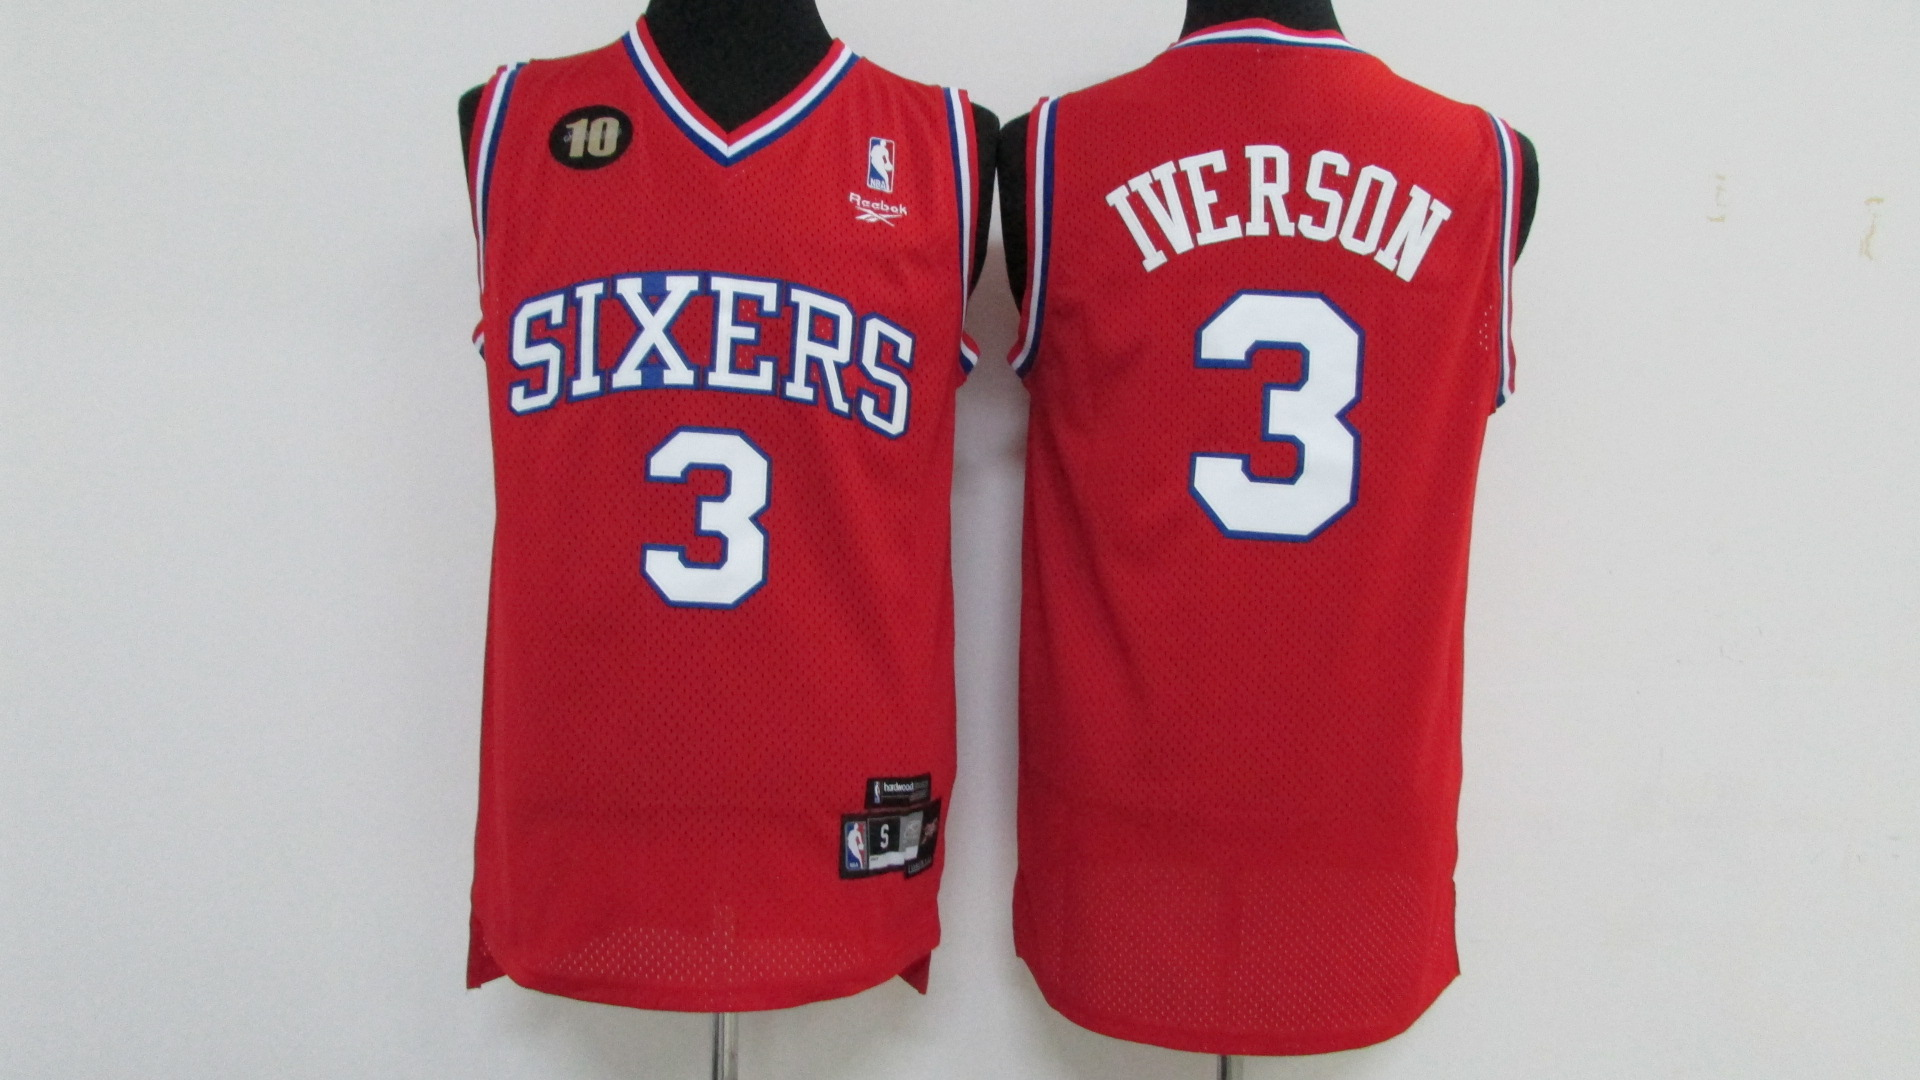 76ers 3 Allen Iverson Red 10th Anniversary Swingman Jersey